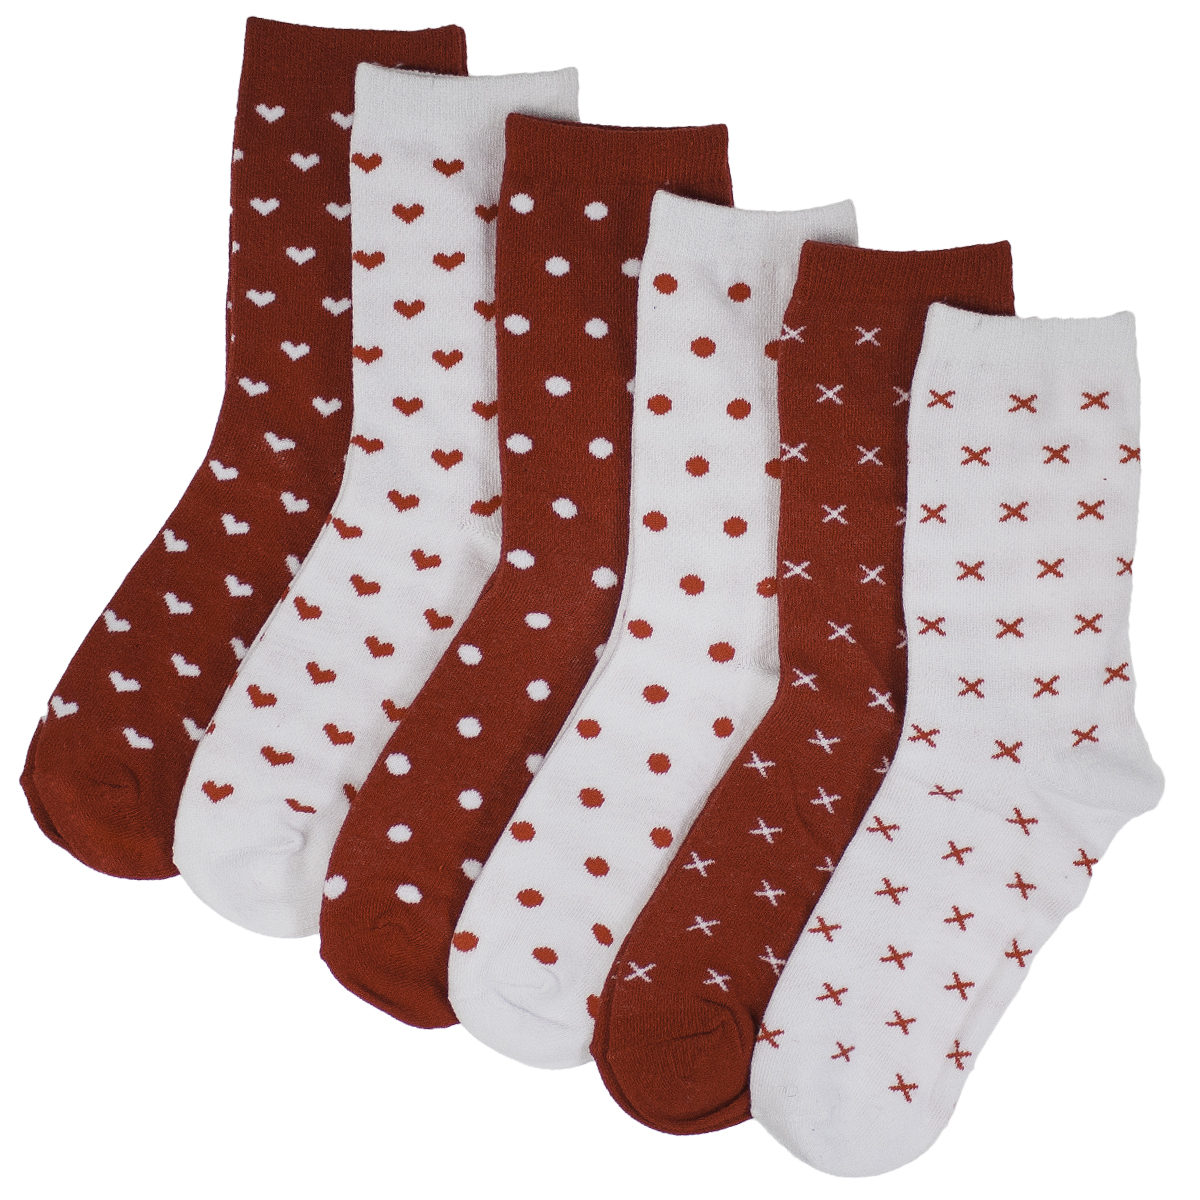 6pk Ladies Valentine's Day Socks Red White Heart XO Kiss Hug Love Cotton Stretch